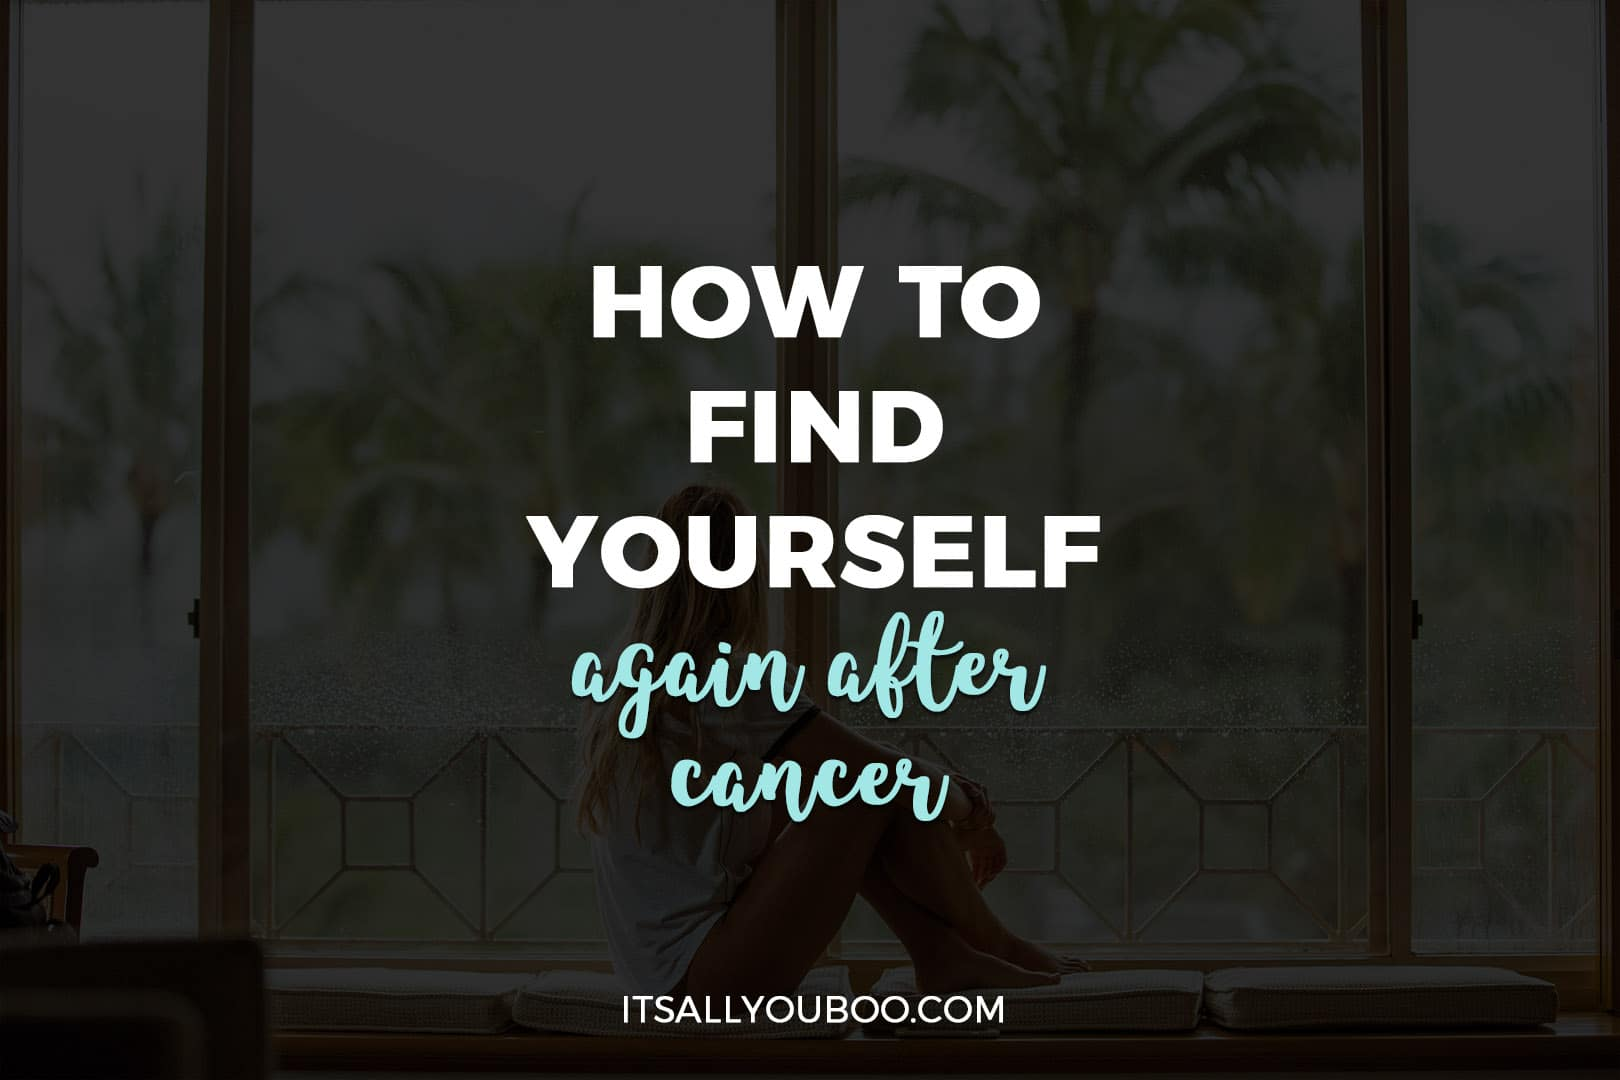 How to Find Yourself Again After Cancer